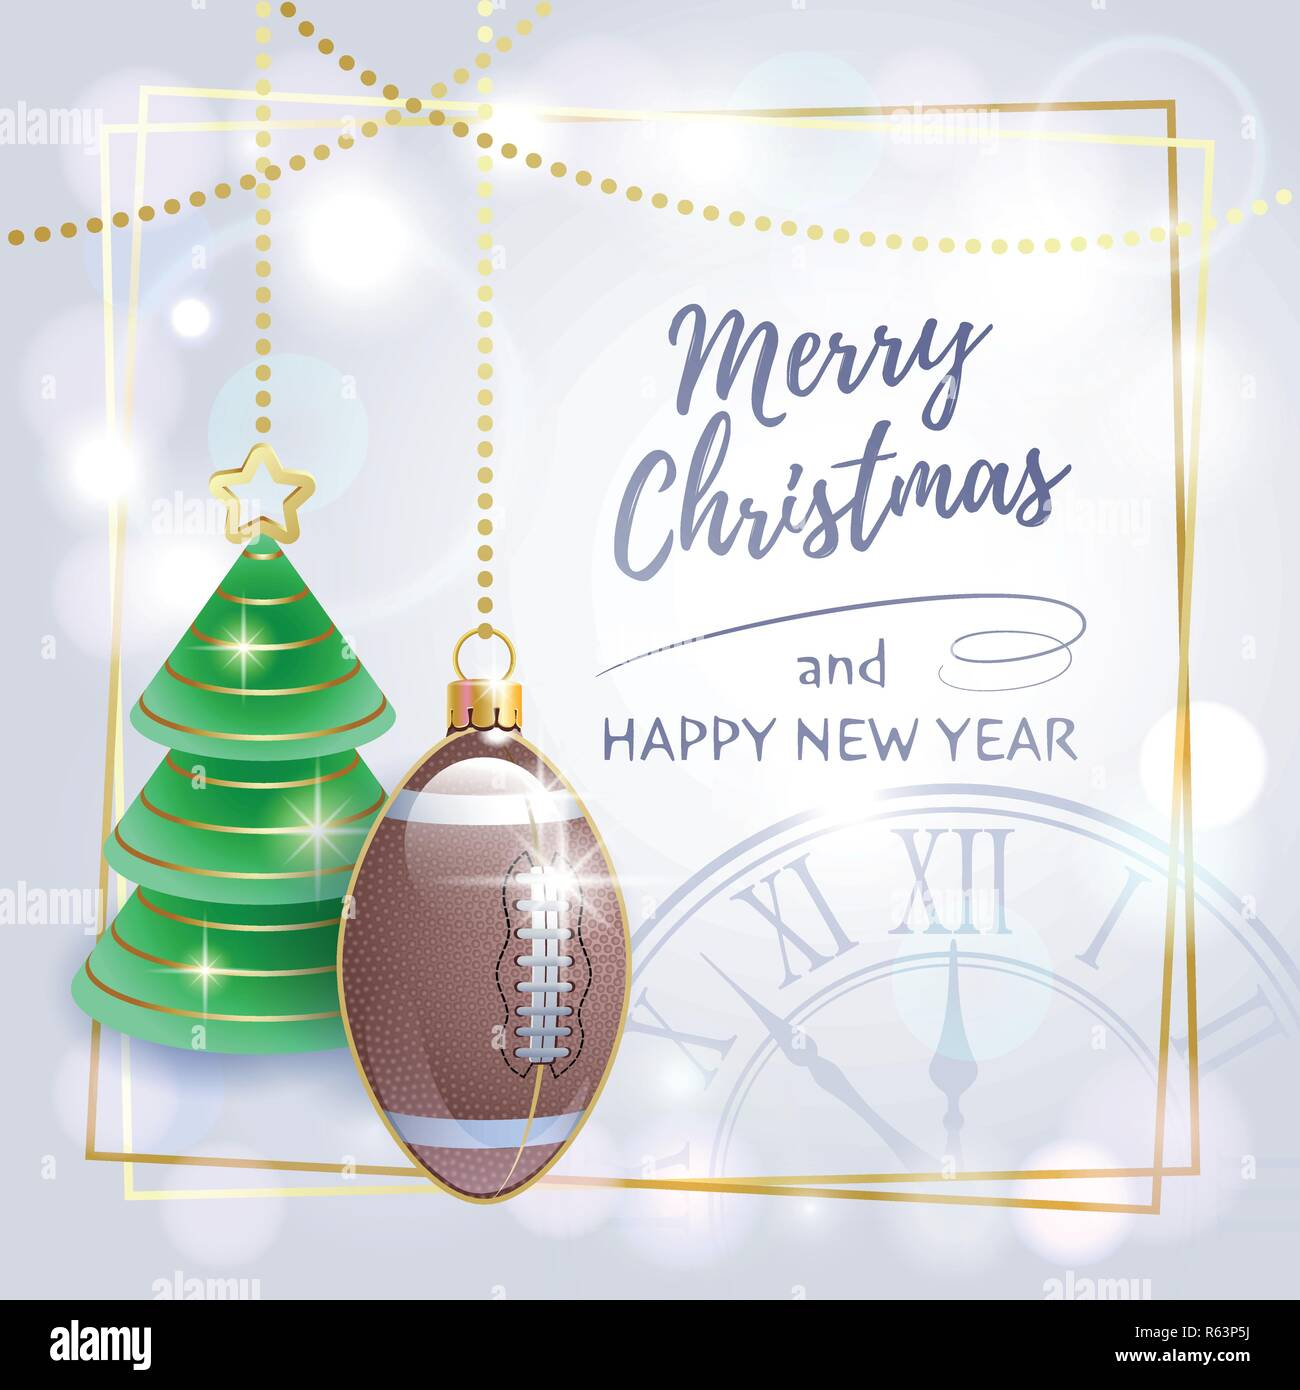 Merry Christmas Happy New Year Sports Greeting Card American